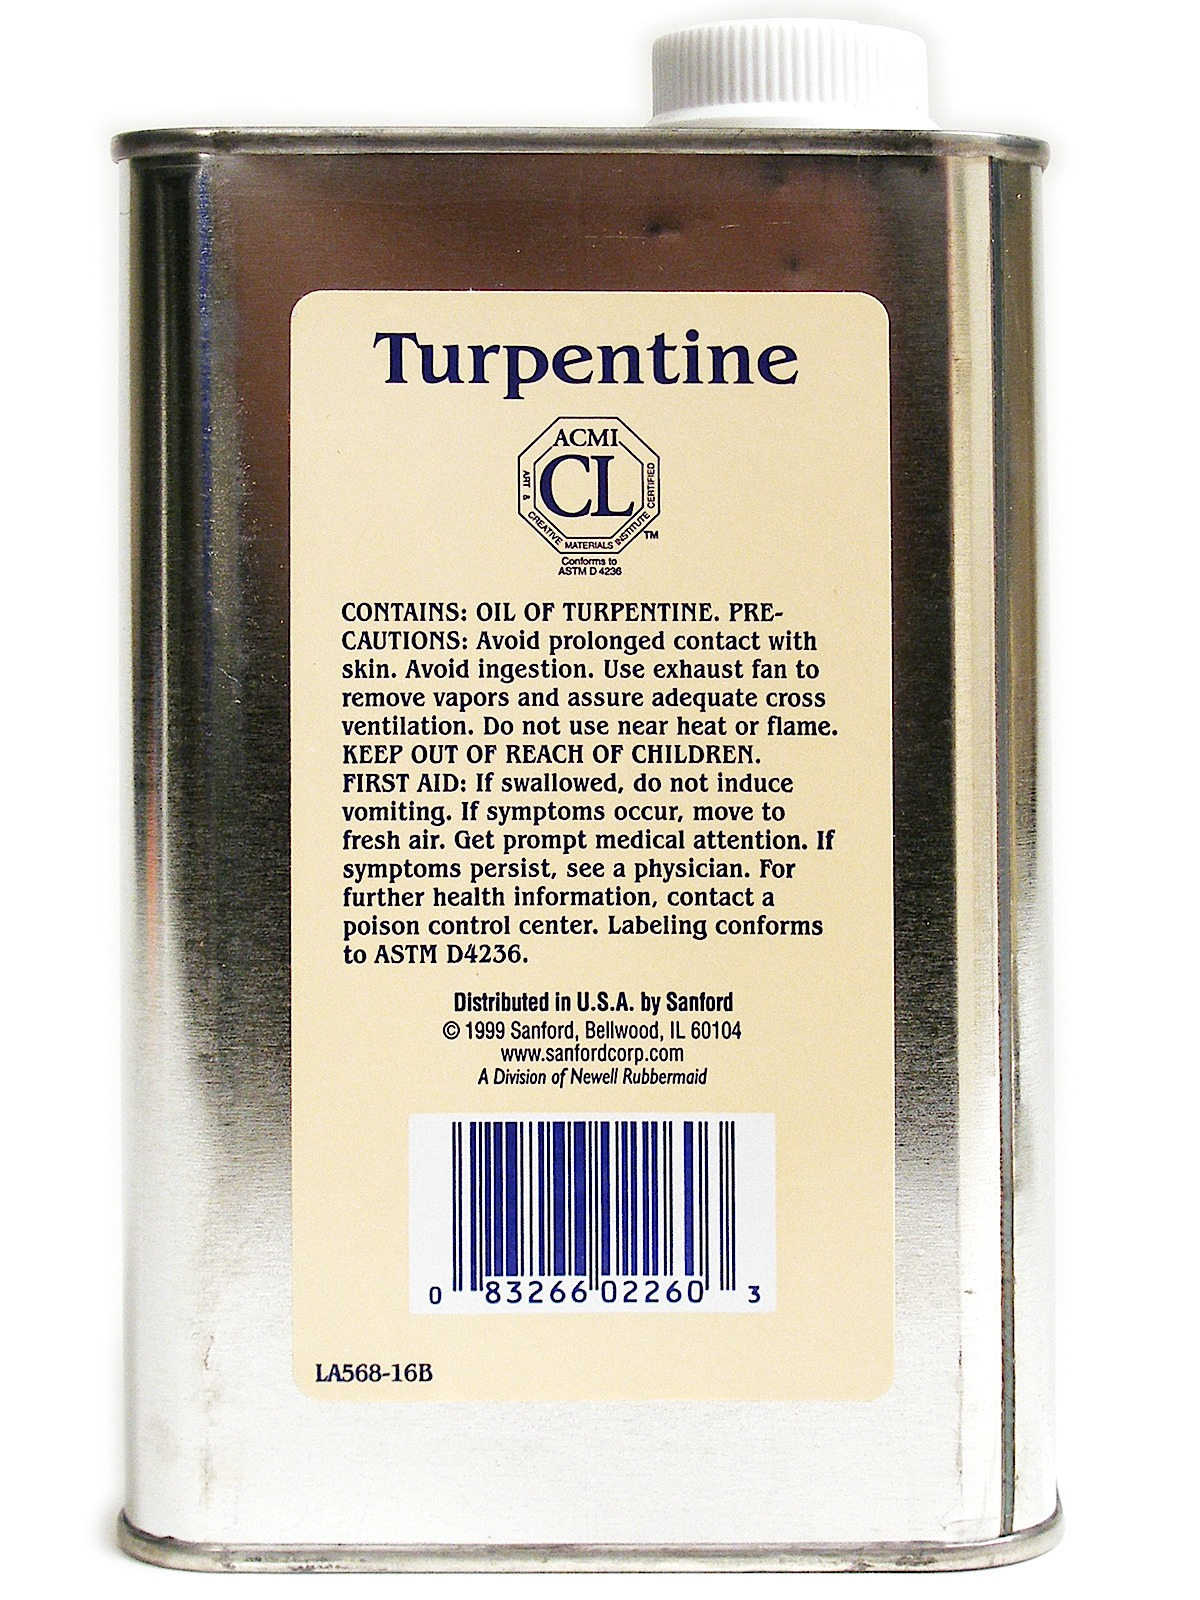 Gum Spirits of Turpentine